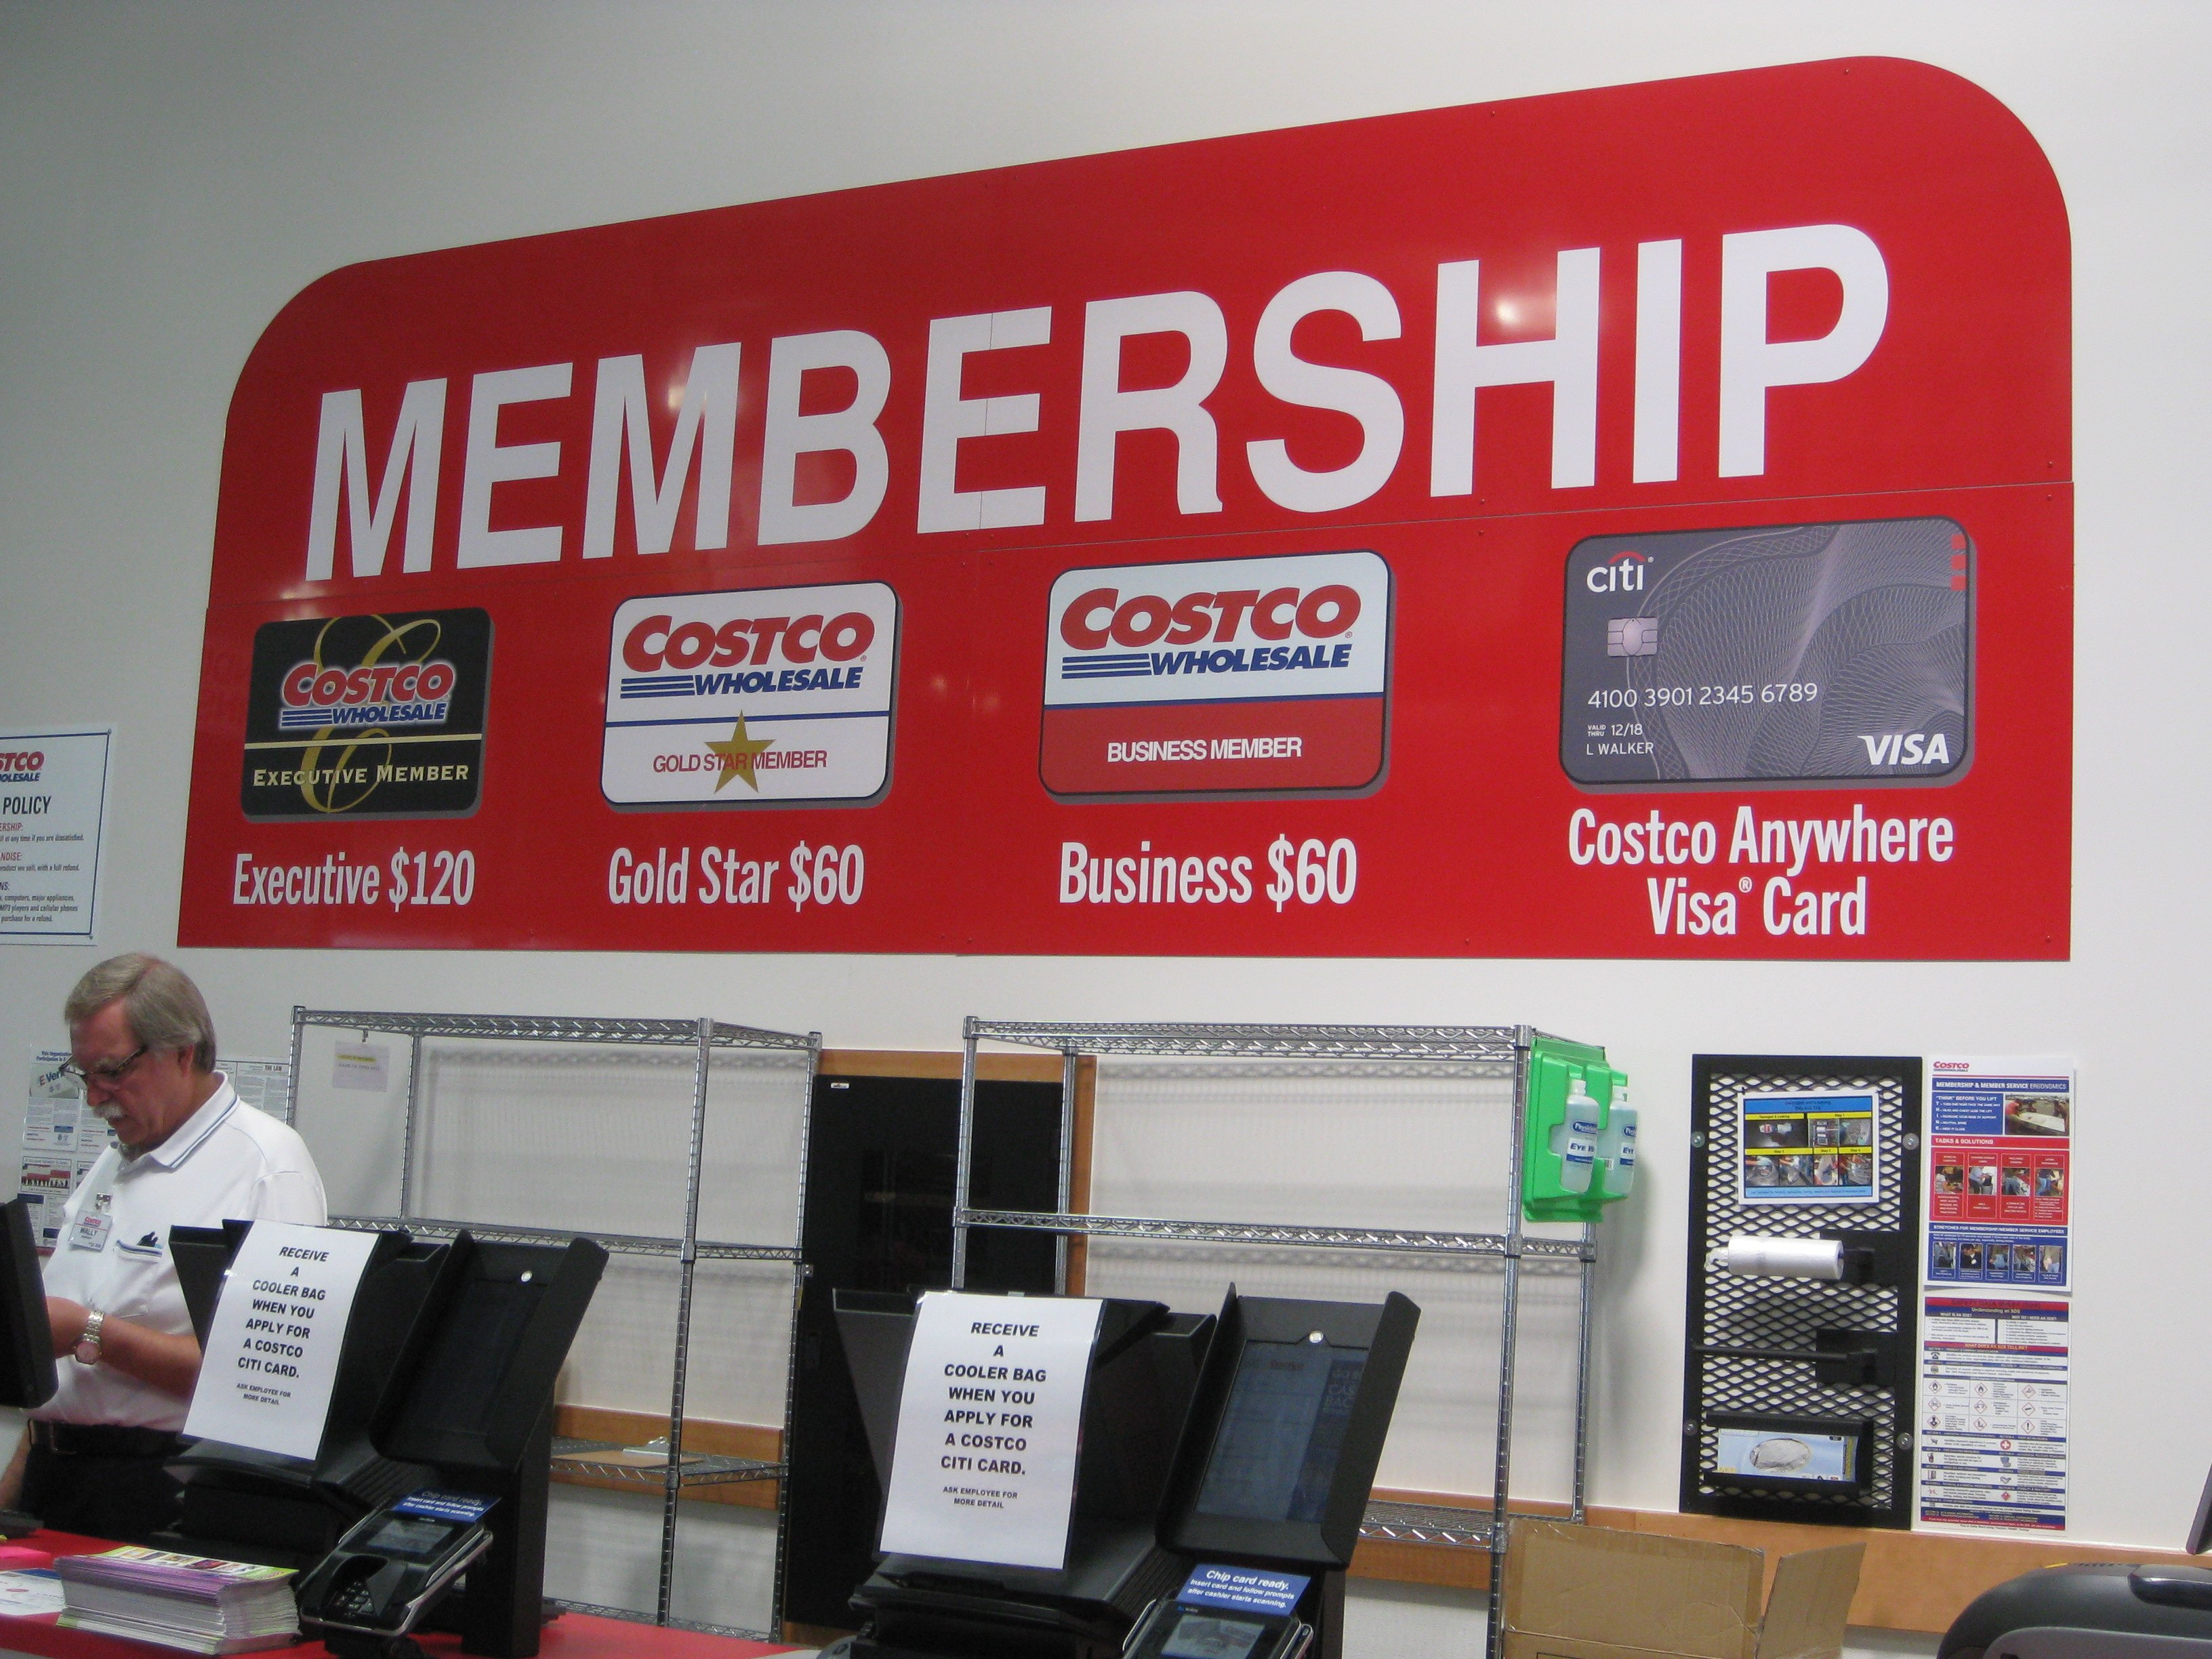 I Finally Tried Costco and Discovered Why Everybody Loves Shopping ...